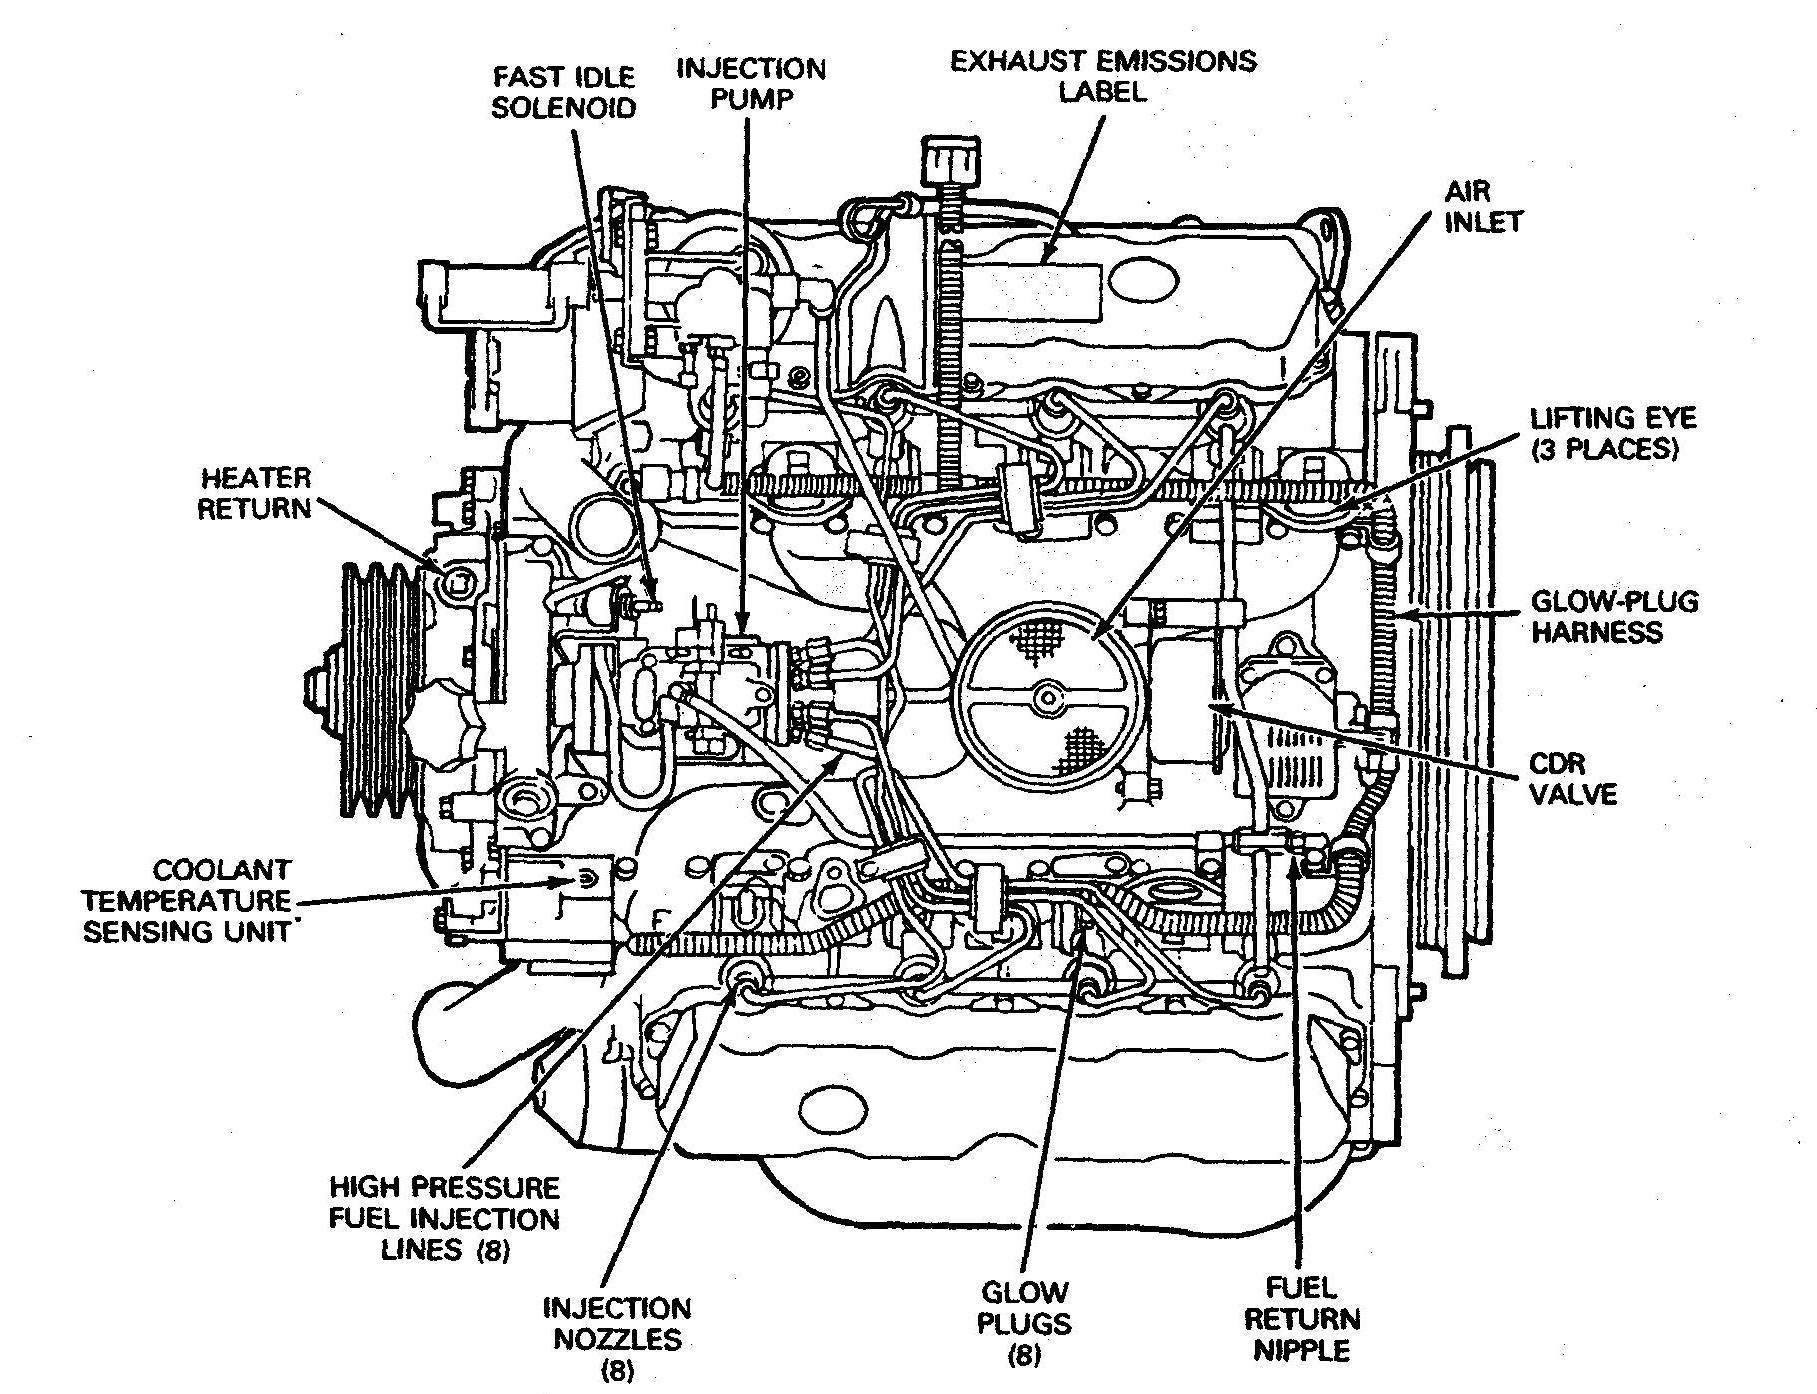 Car Engine Parts Diagram | My Wiring DIagram